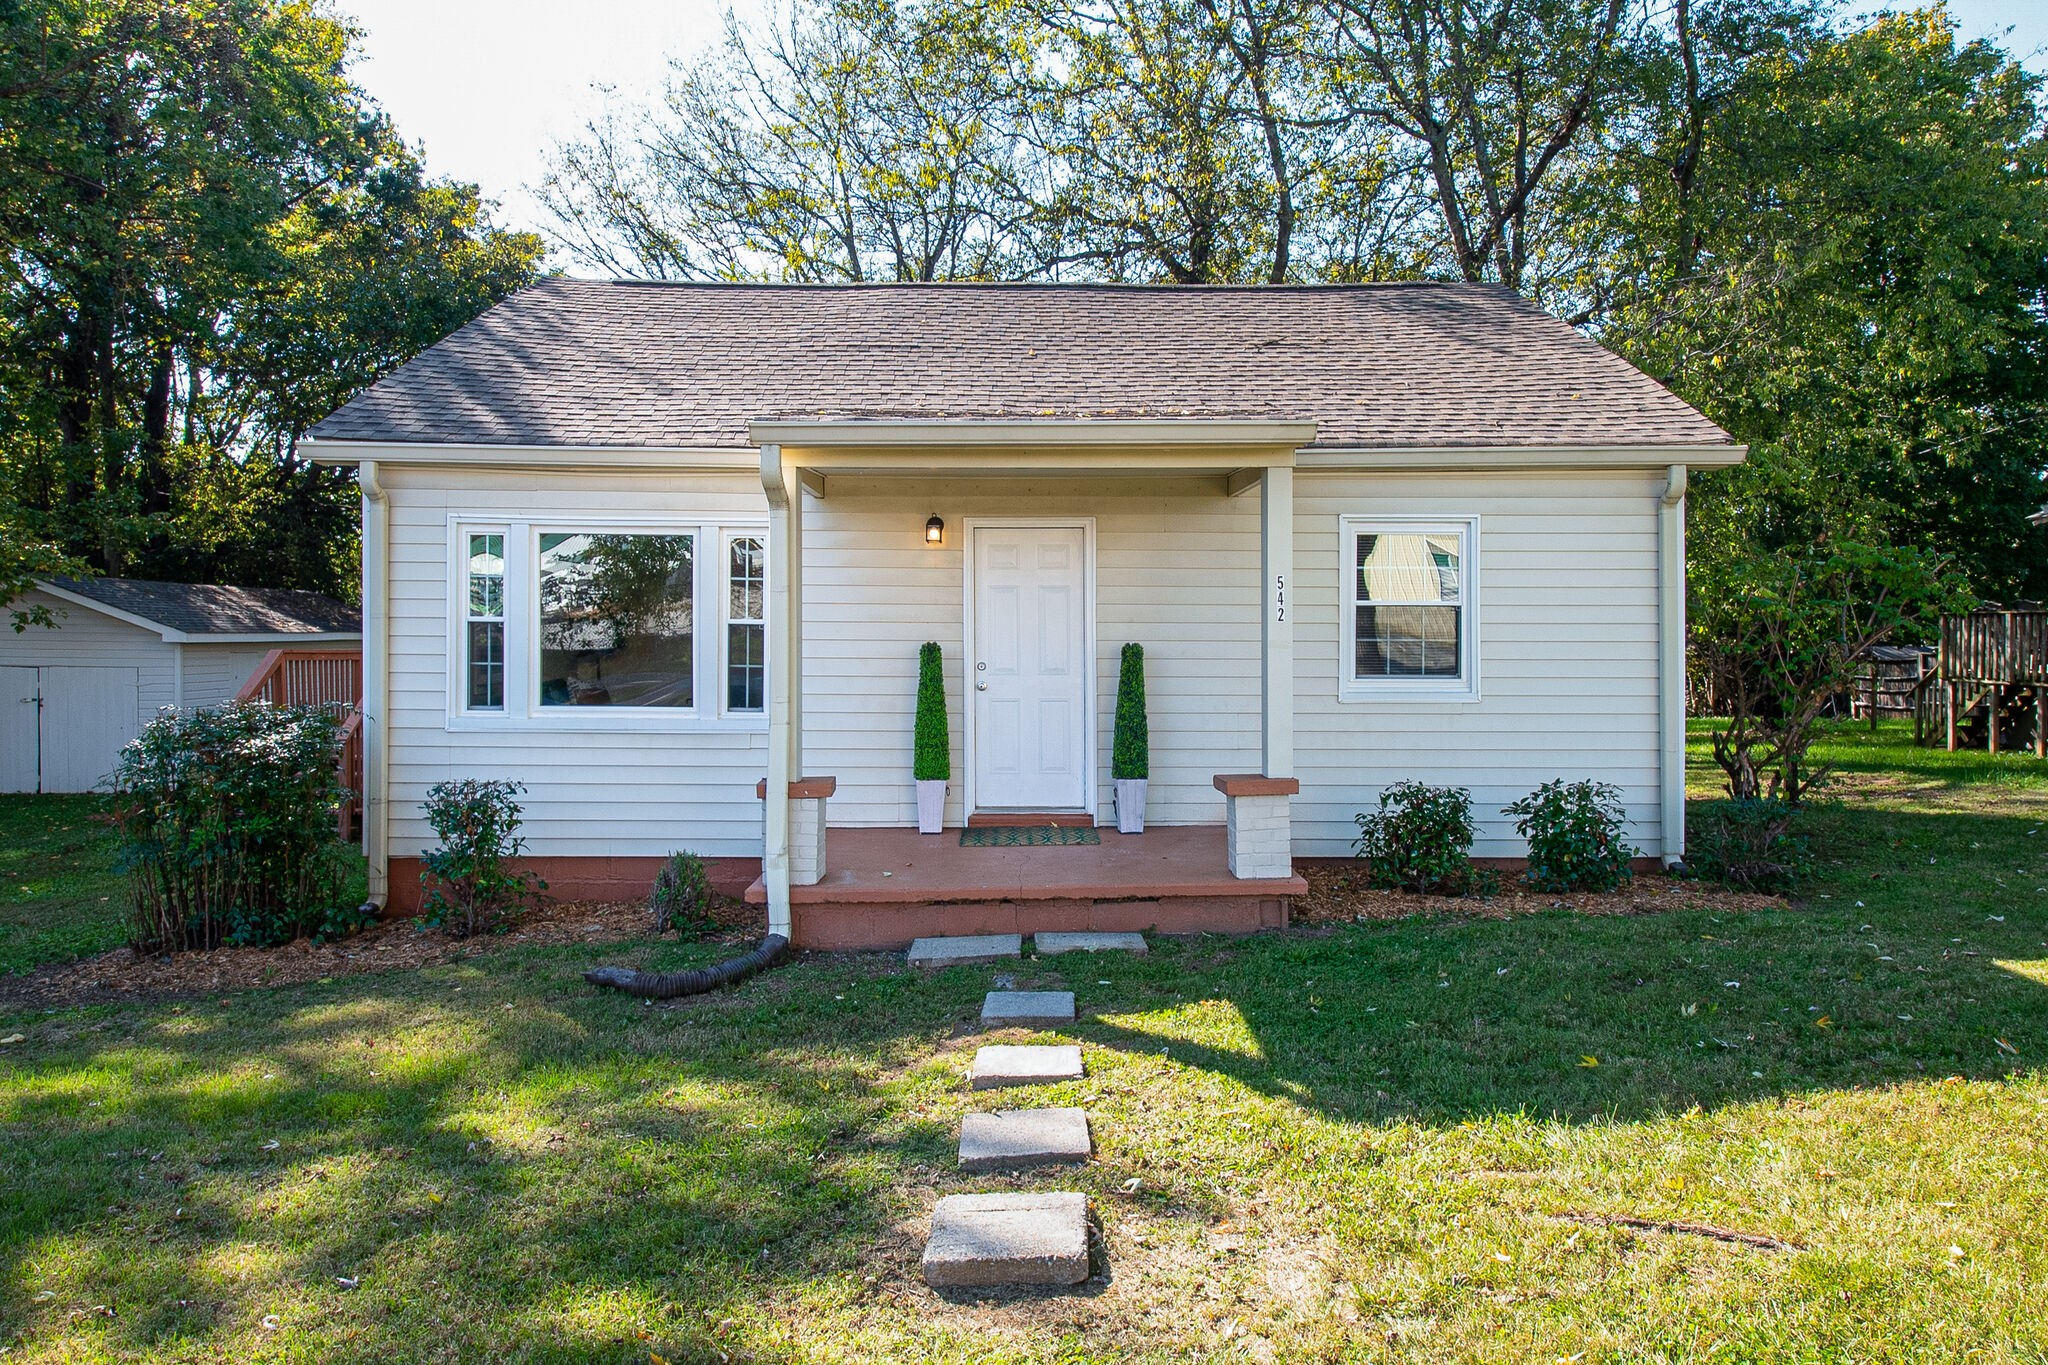 Fantastic renovated home close to all that Gallatin has to offer. Generous sized living room drenched in sunlight - open style kitchen to eat-in area, and a HUGE backyard that is begging for a bonfire and a hammock! All appliances remain.